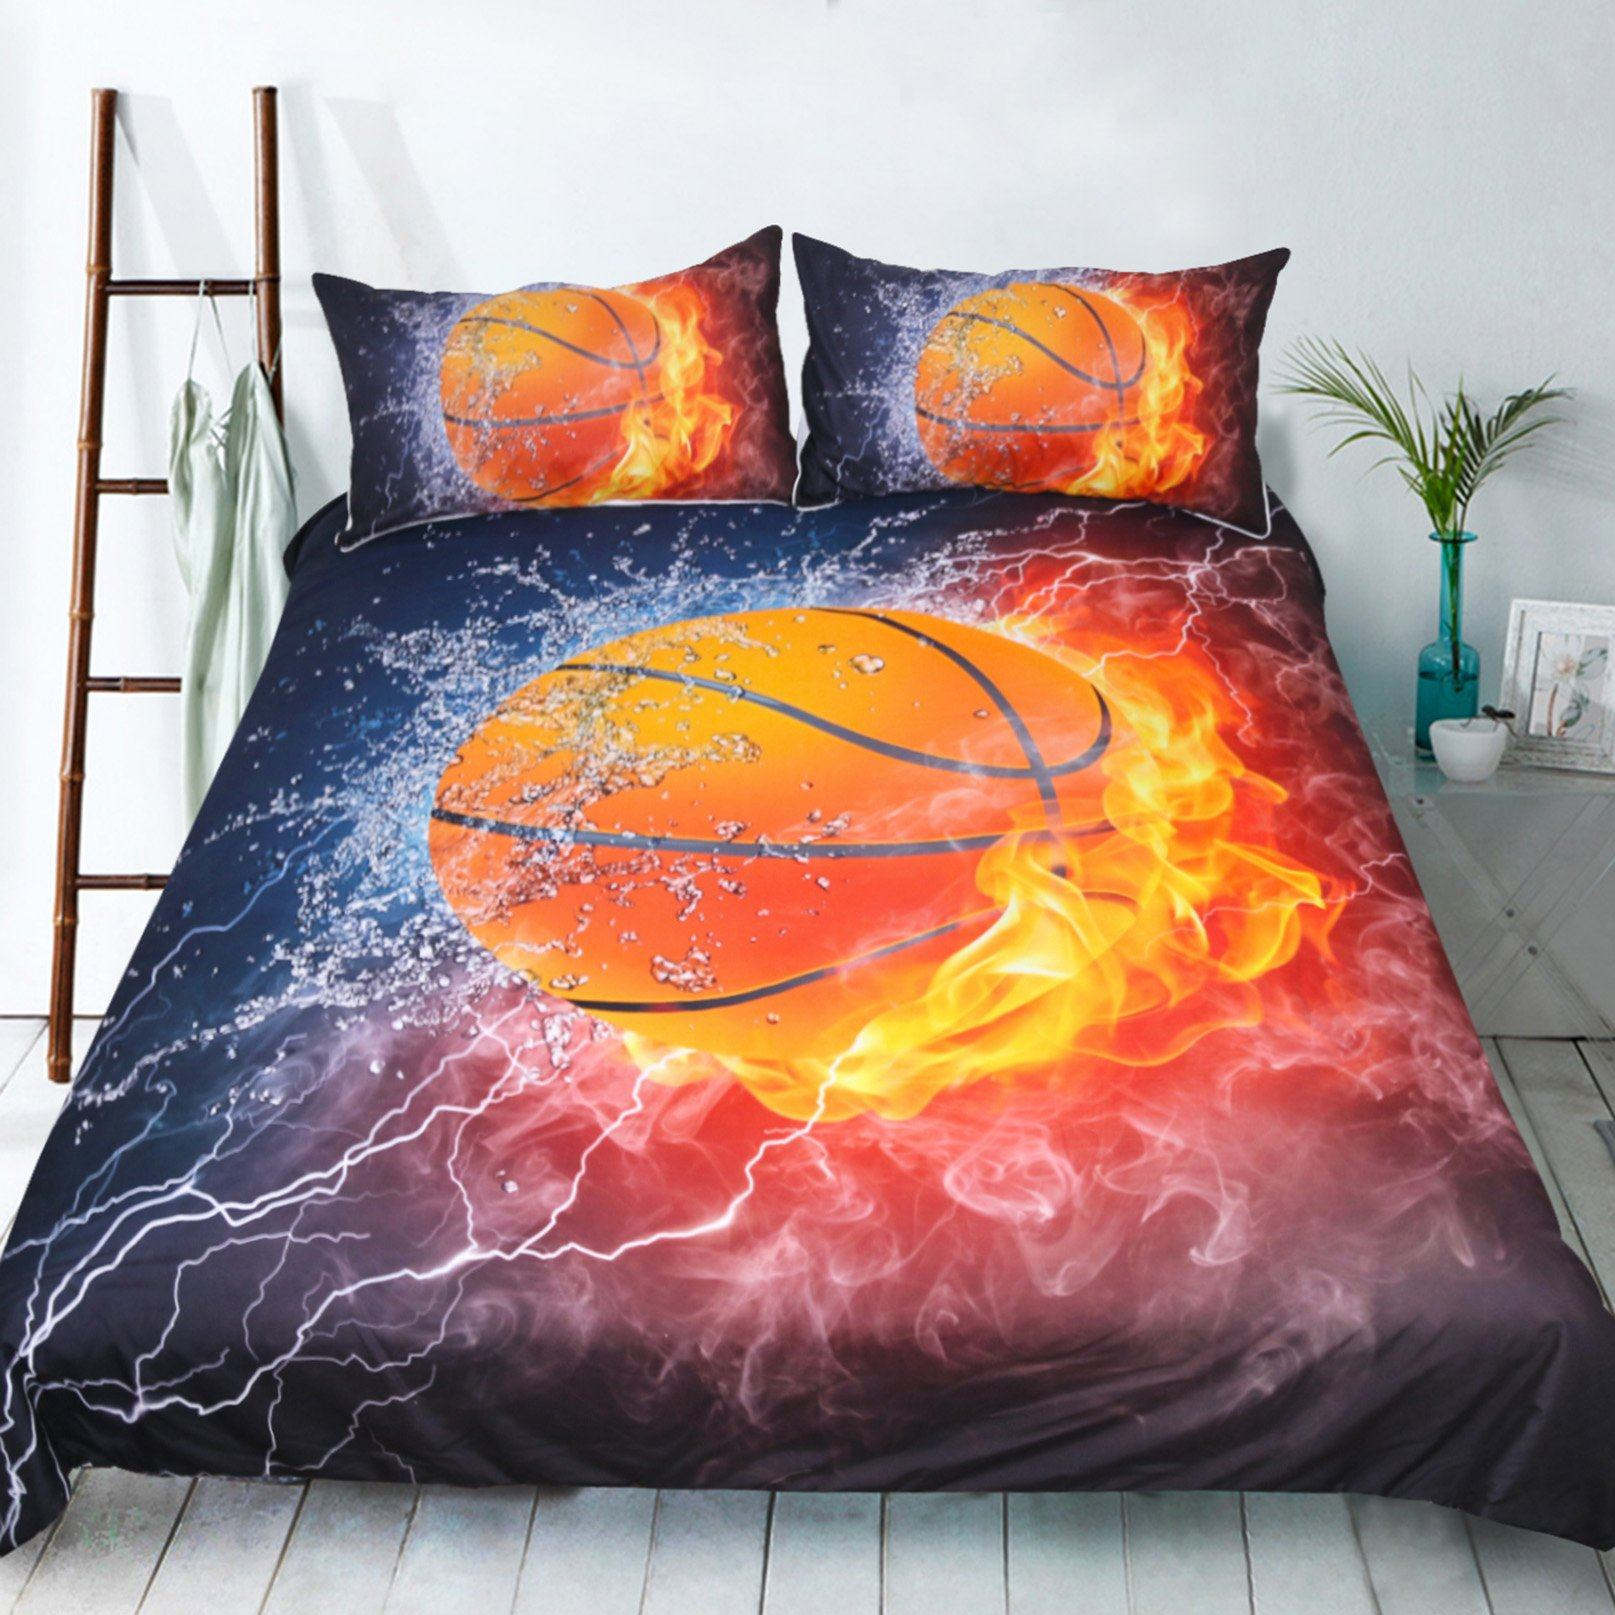 3D Sports Basketball 163 Bed Pillowcases Quilt Wallpaper AJ Wallpaper